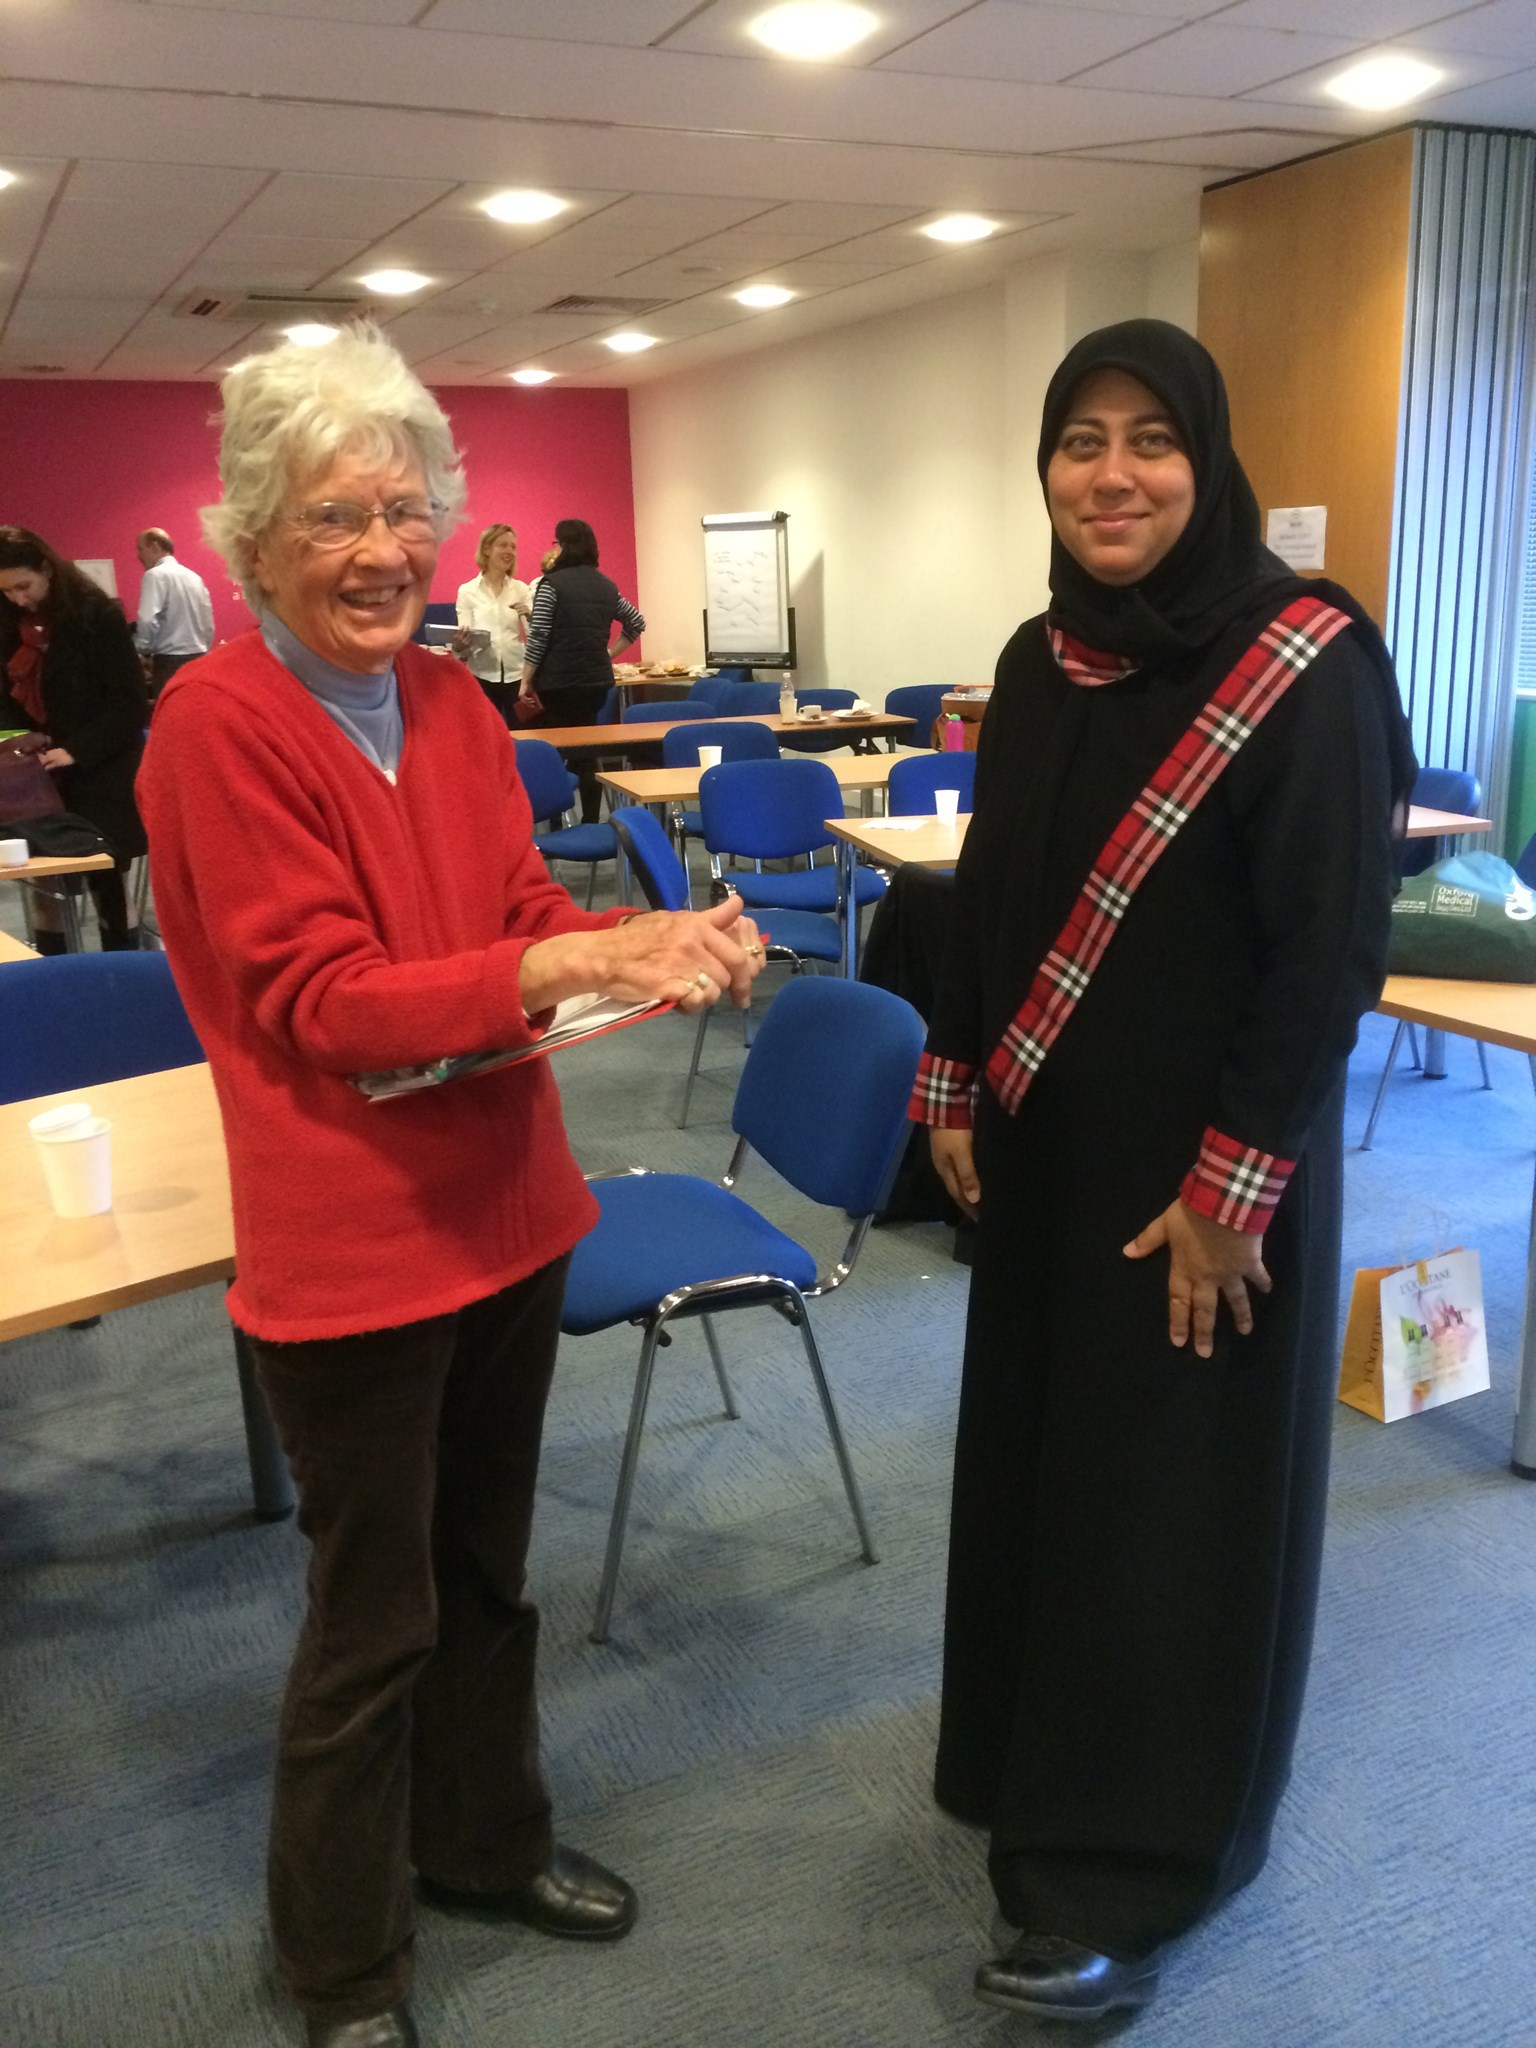 Jane at the NHA's annual Members' Day in 2013 talking to Uzma, a specialist teacher from Oman.